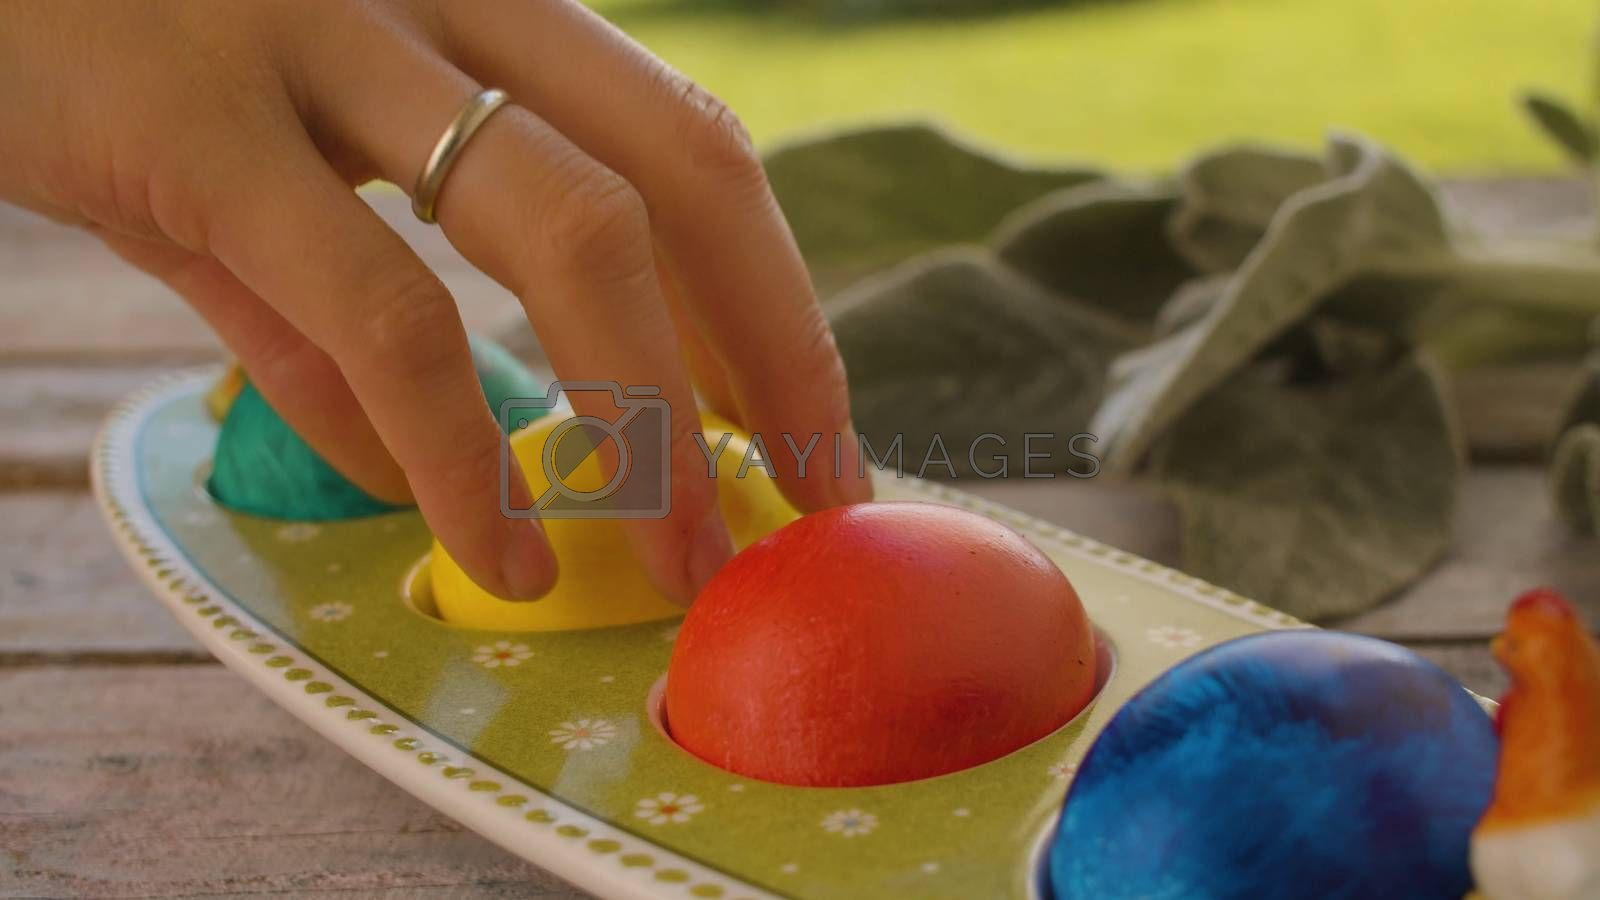 Close up hand taking a colored yellow Easter egg from an egg box placed on wooden table in the garden. Easter celebration